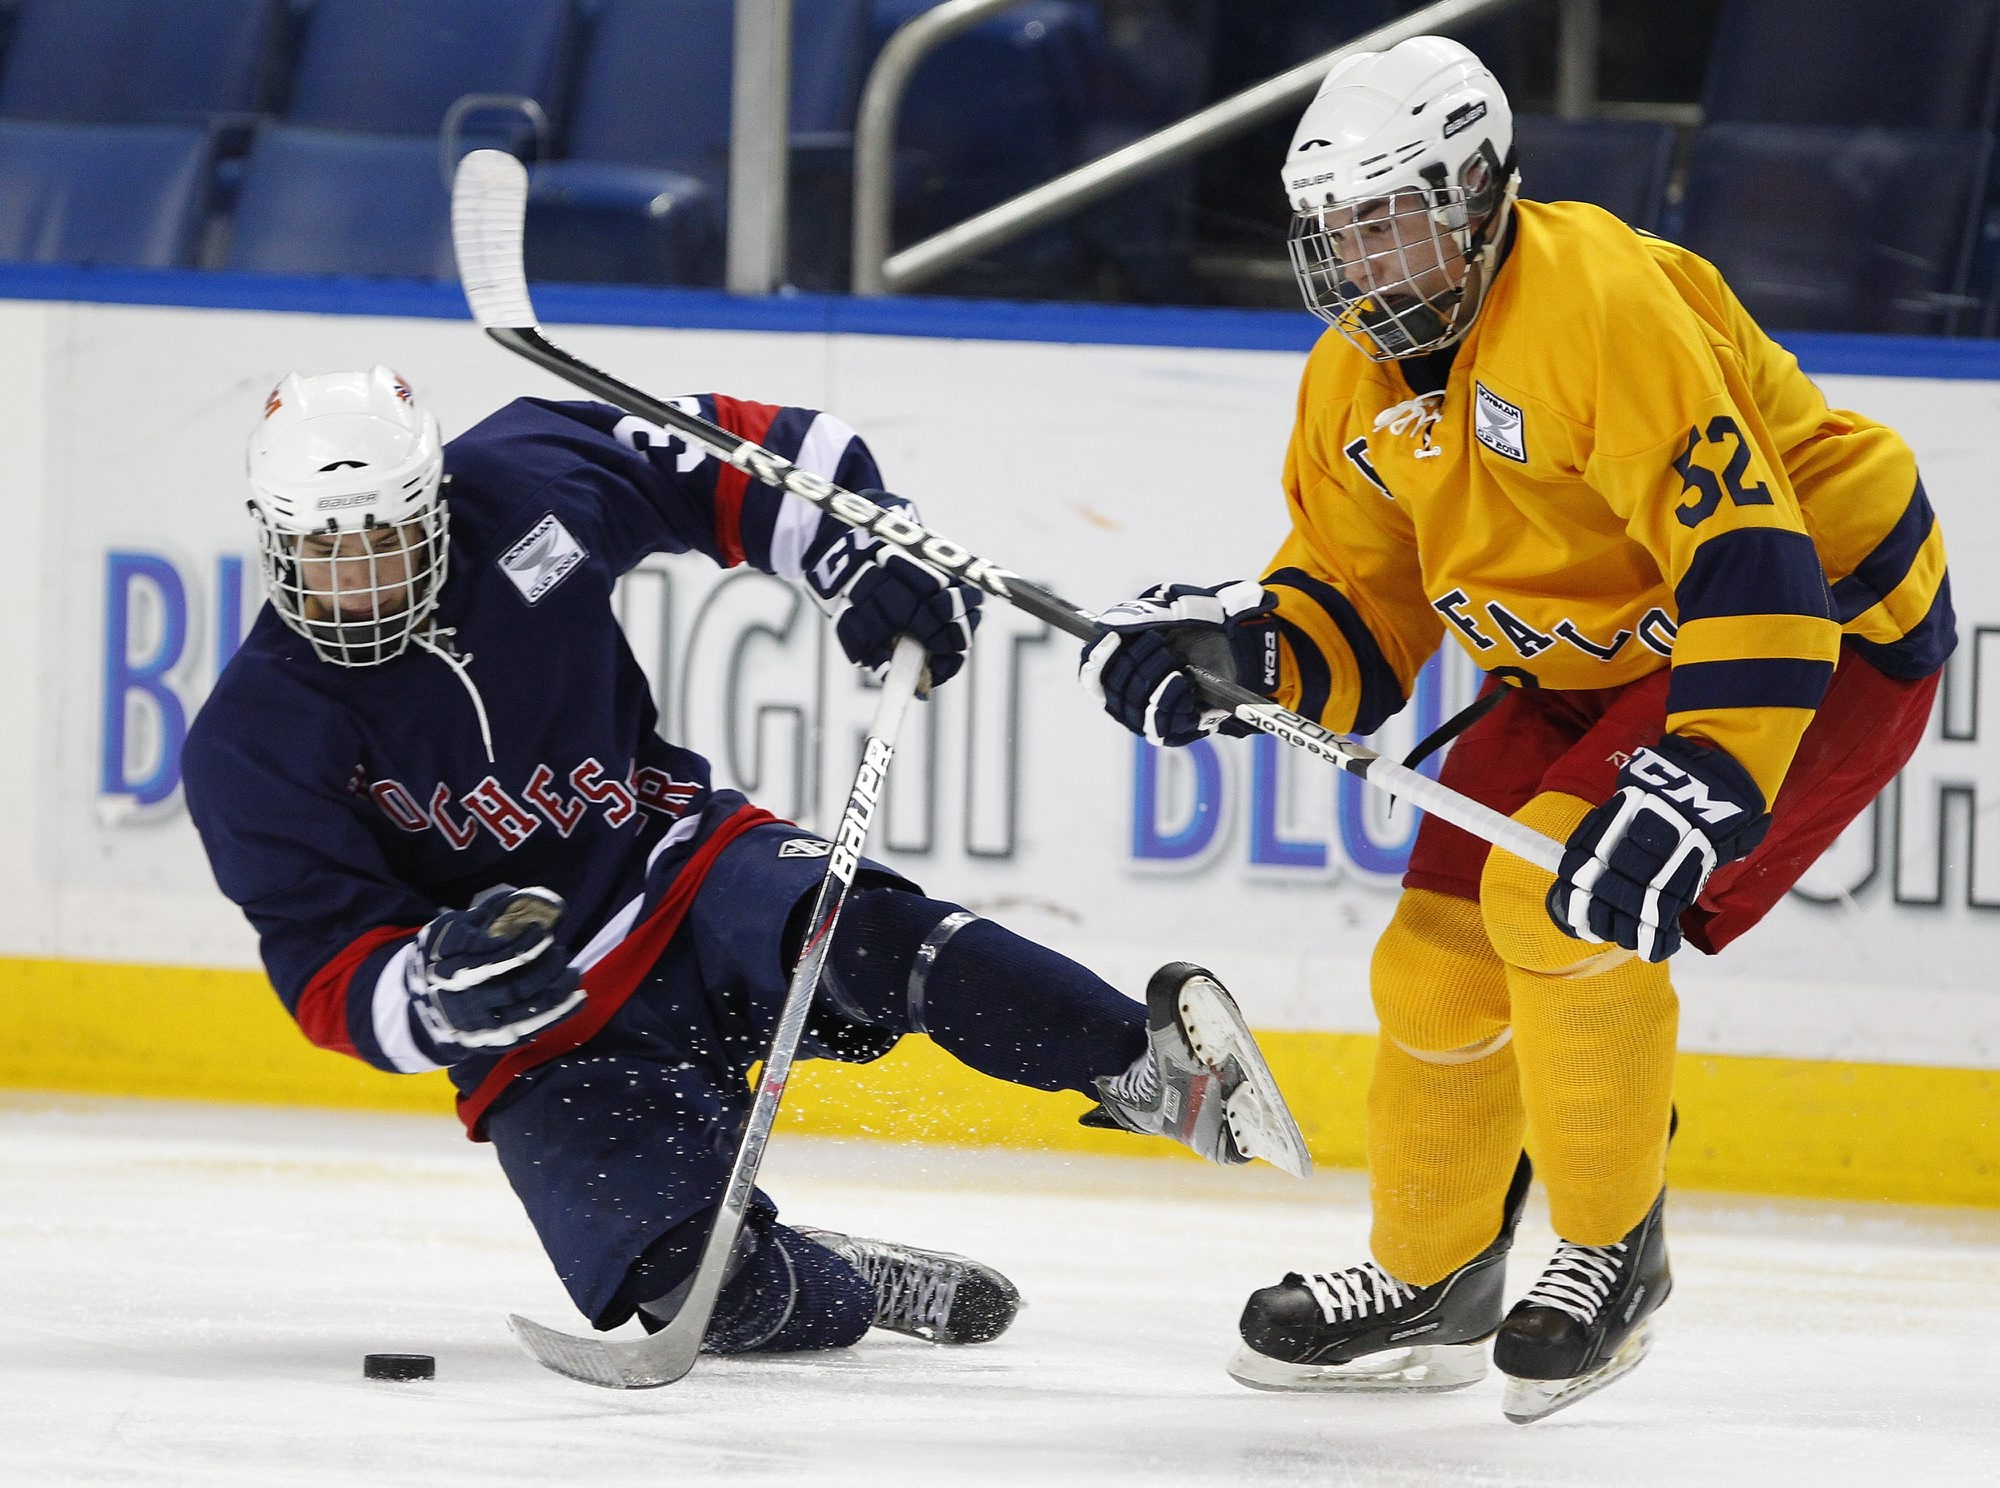 Buffalo senior Ty Gallagher (52) from Grand Island checks Rochester senior Anthony Crawford during the Scotty Bowman Showcase at the First Niagara Center.